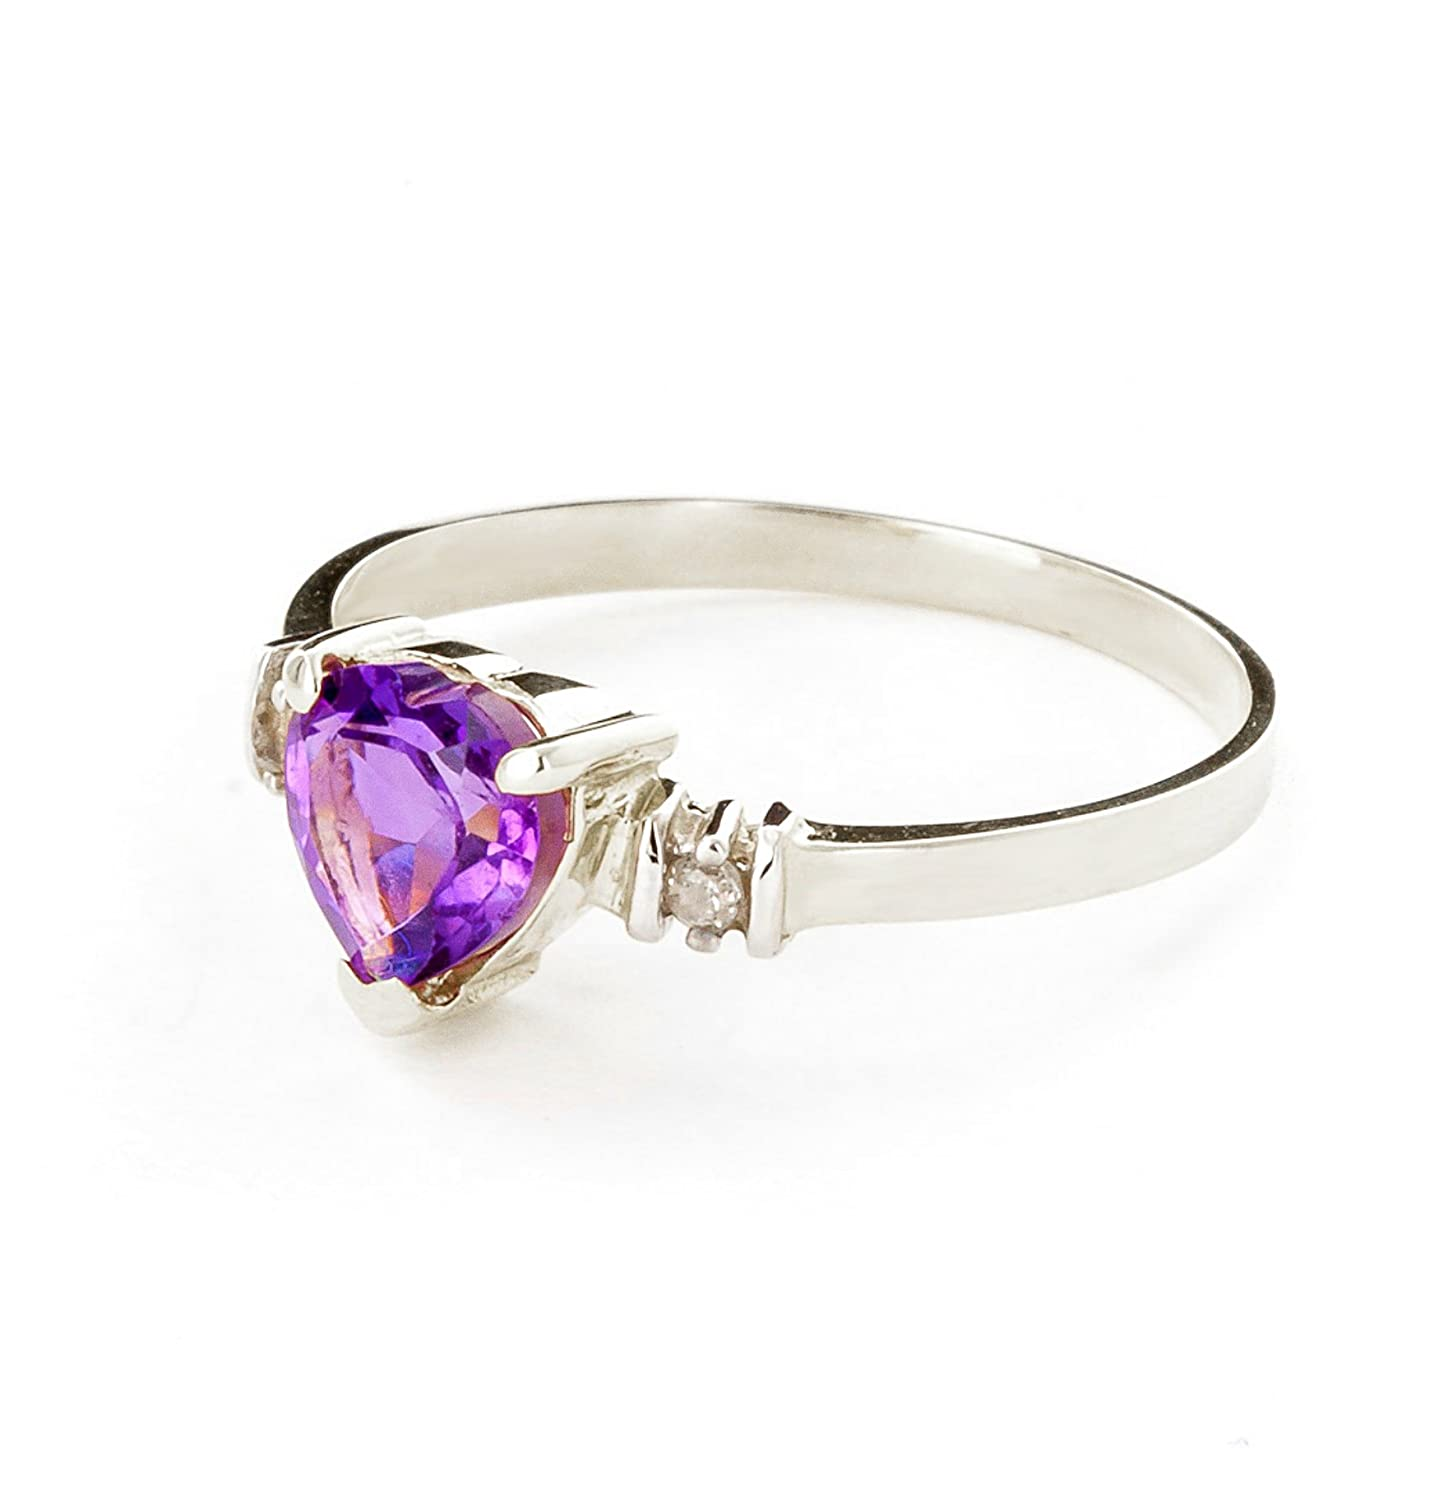 14k Gold Ring with Genuine Diamonds and Natural Heart-shaped Purple Amethyst Galaxy Gold Products Inc.